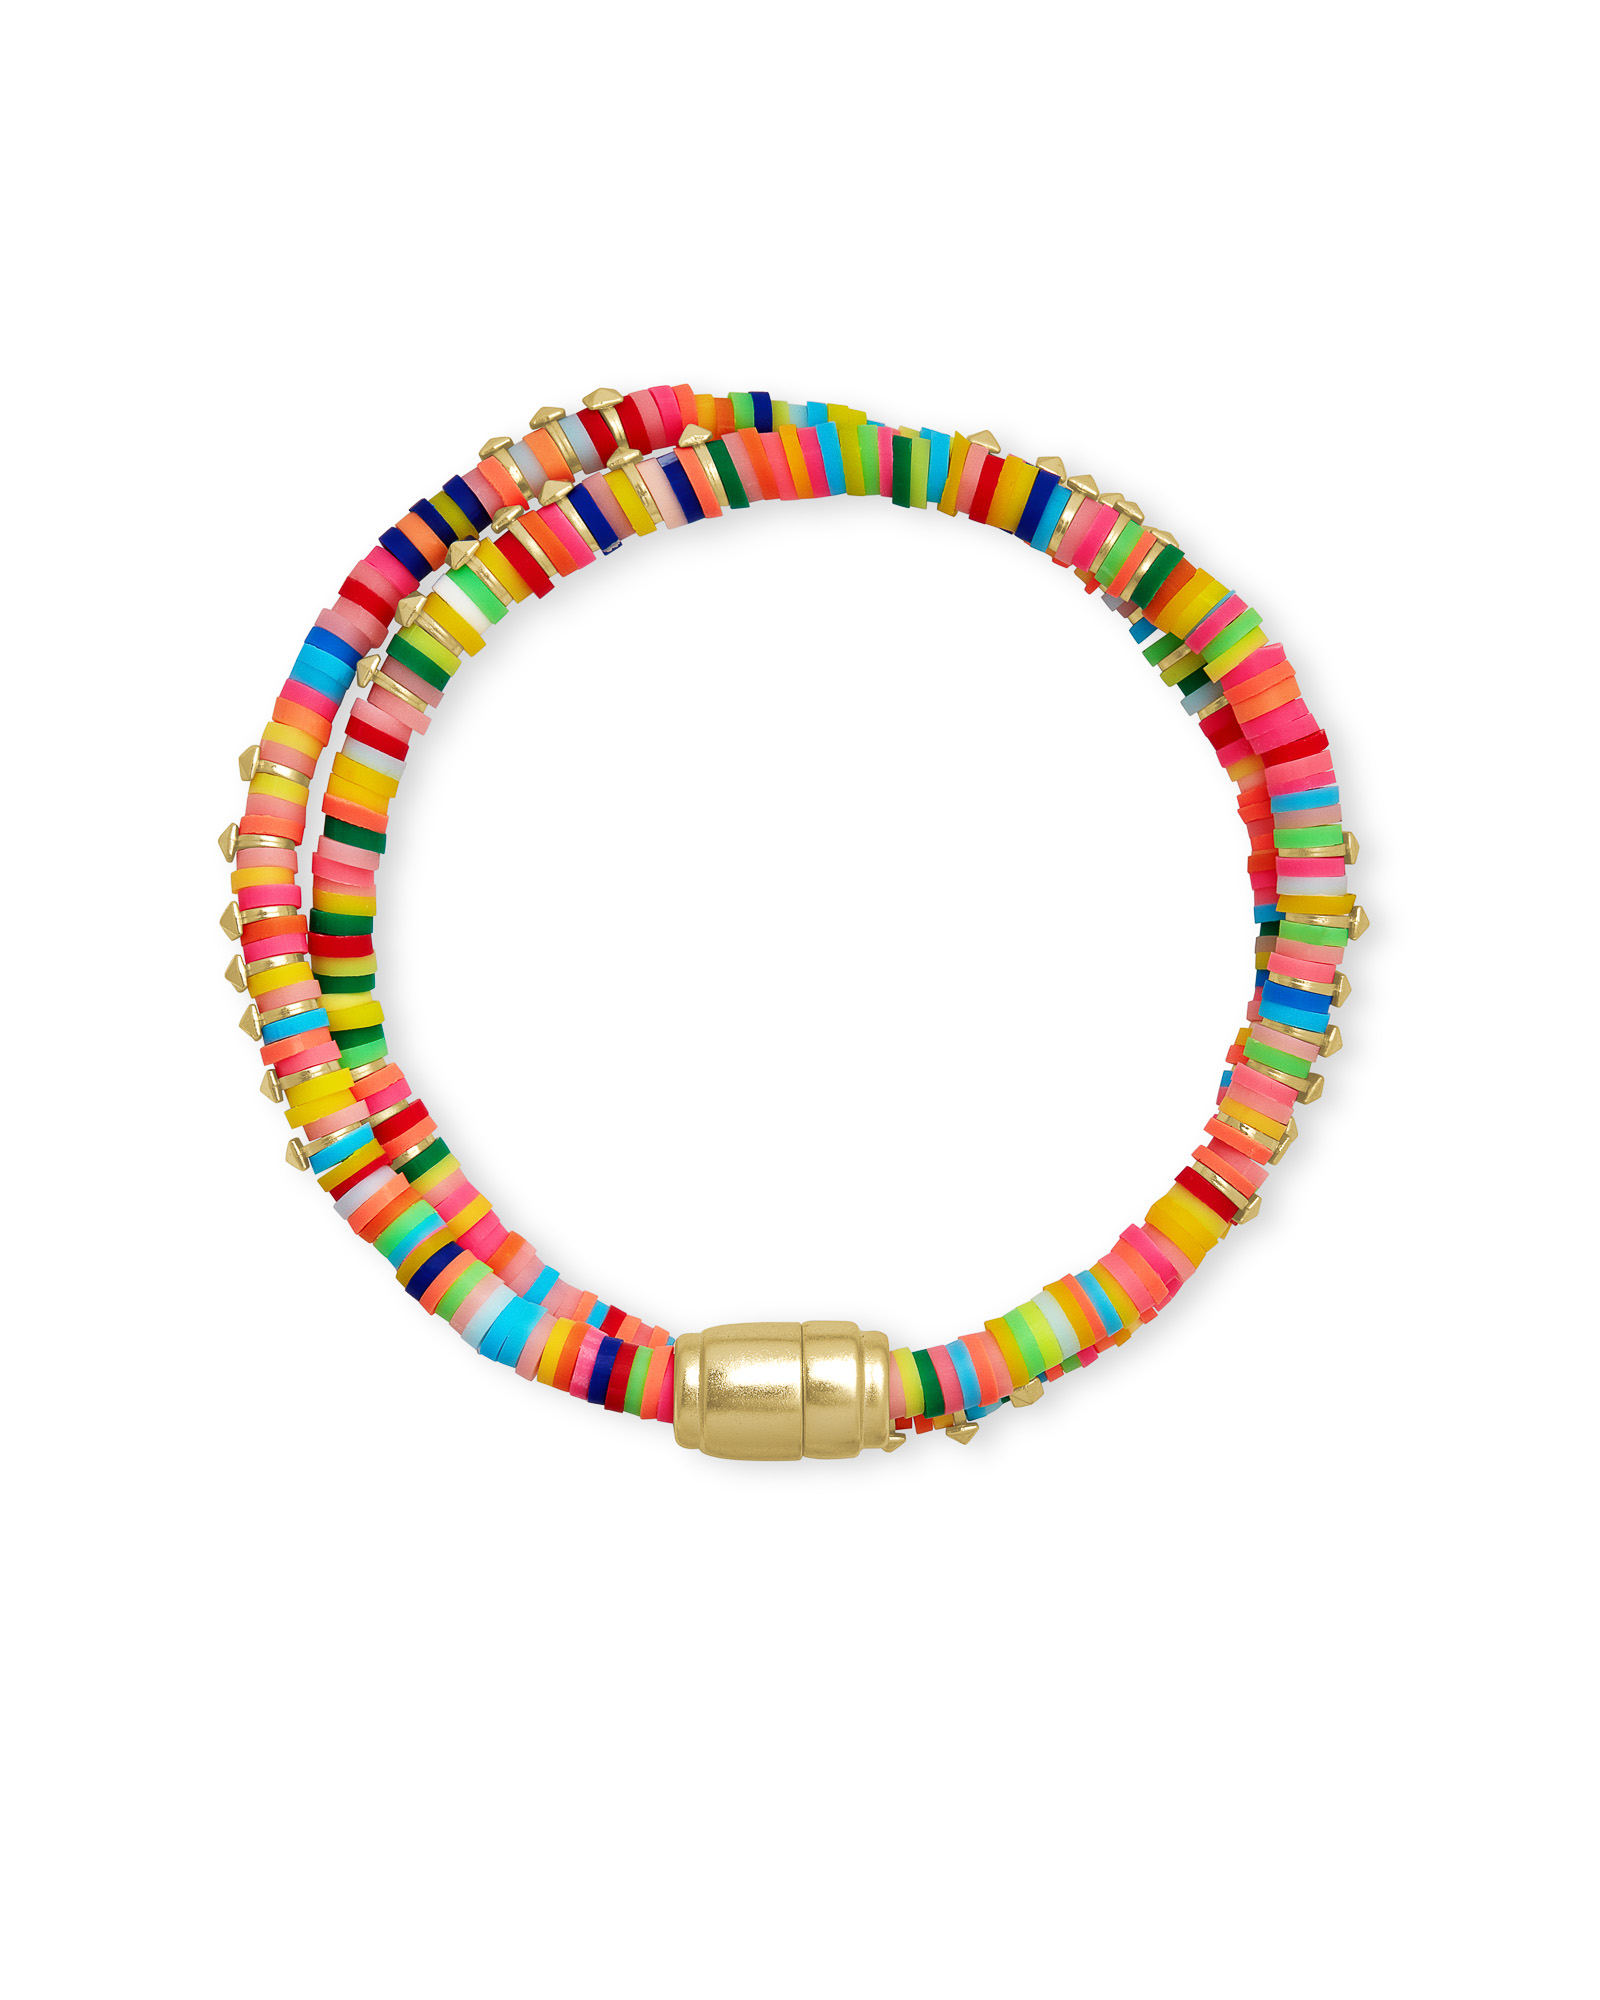 Reece Gold Wrap Bracelet in Neon Mix